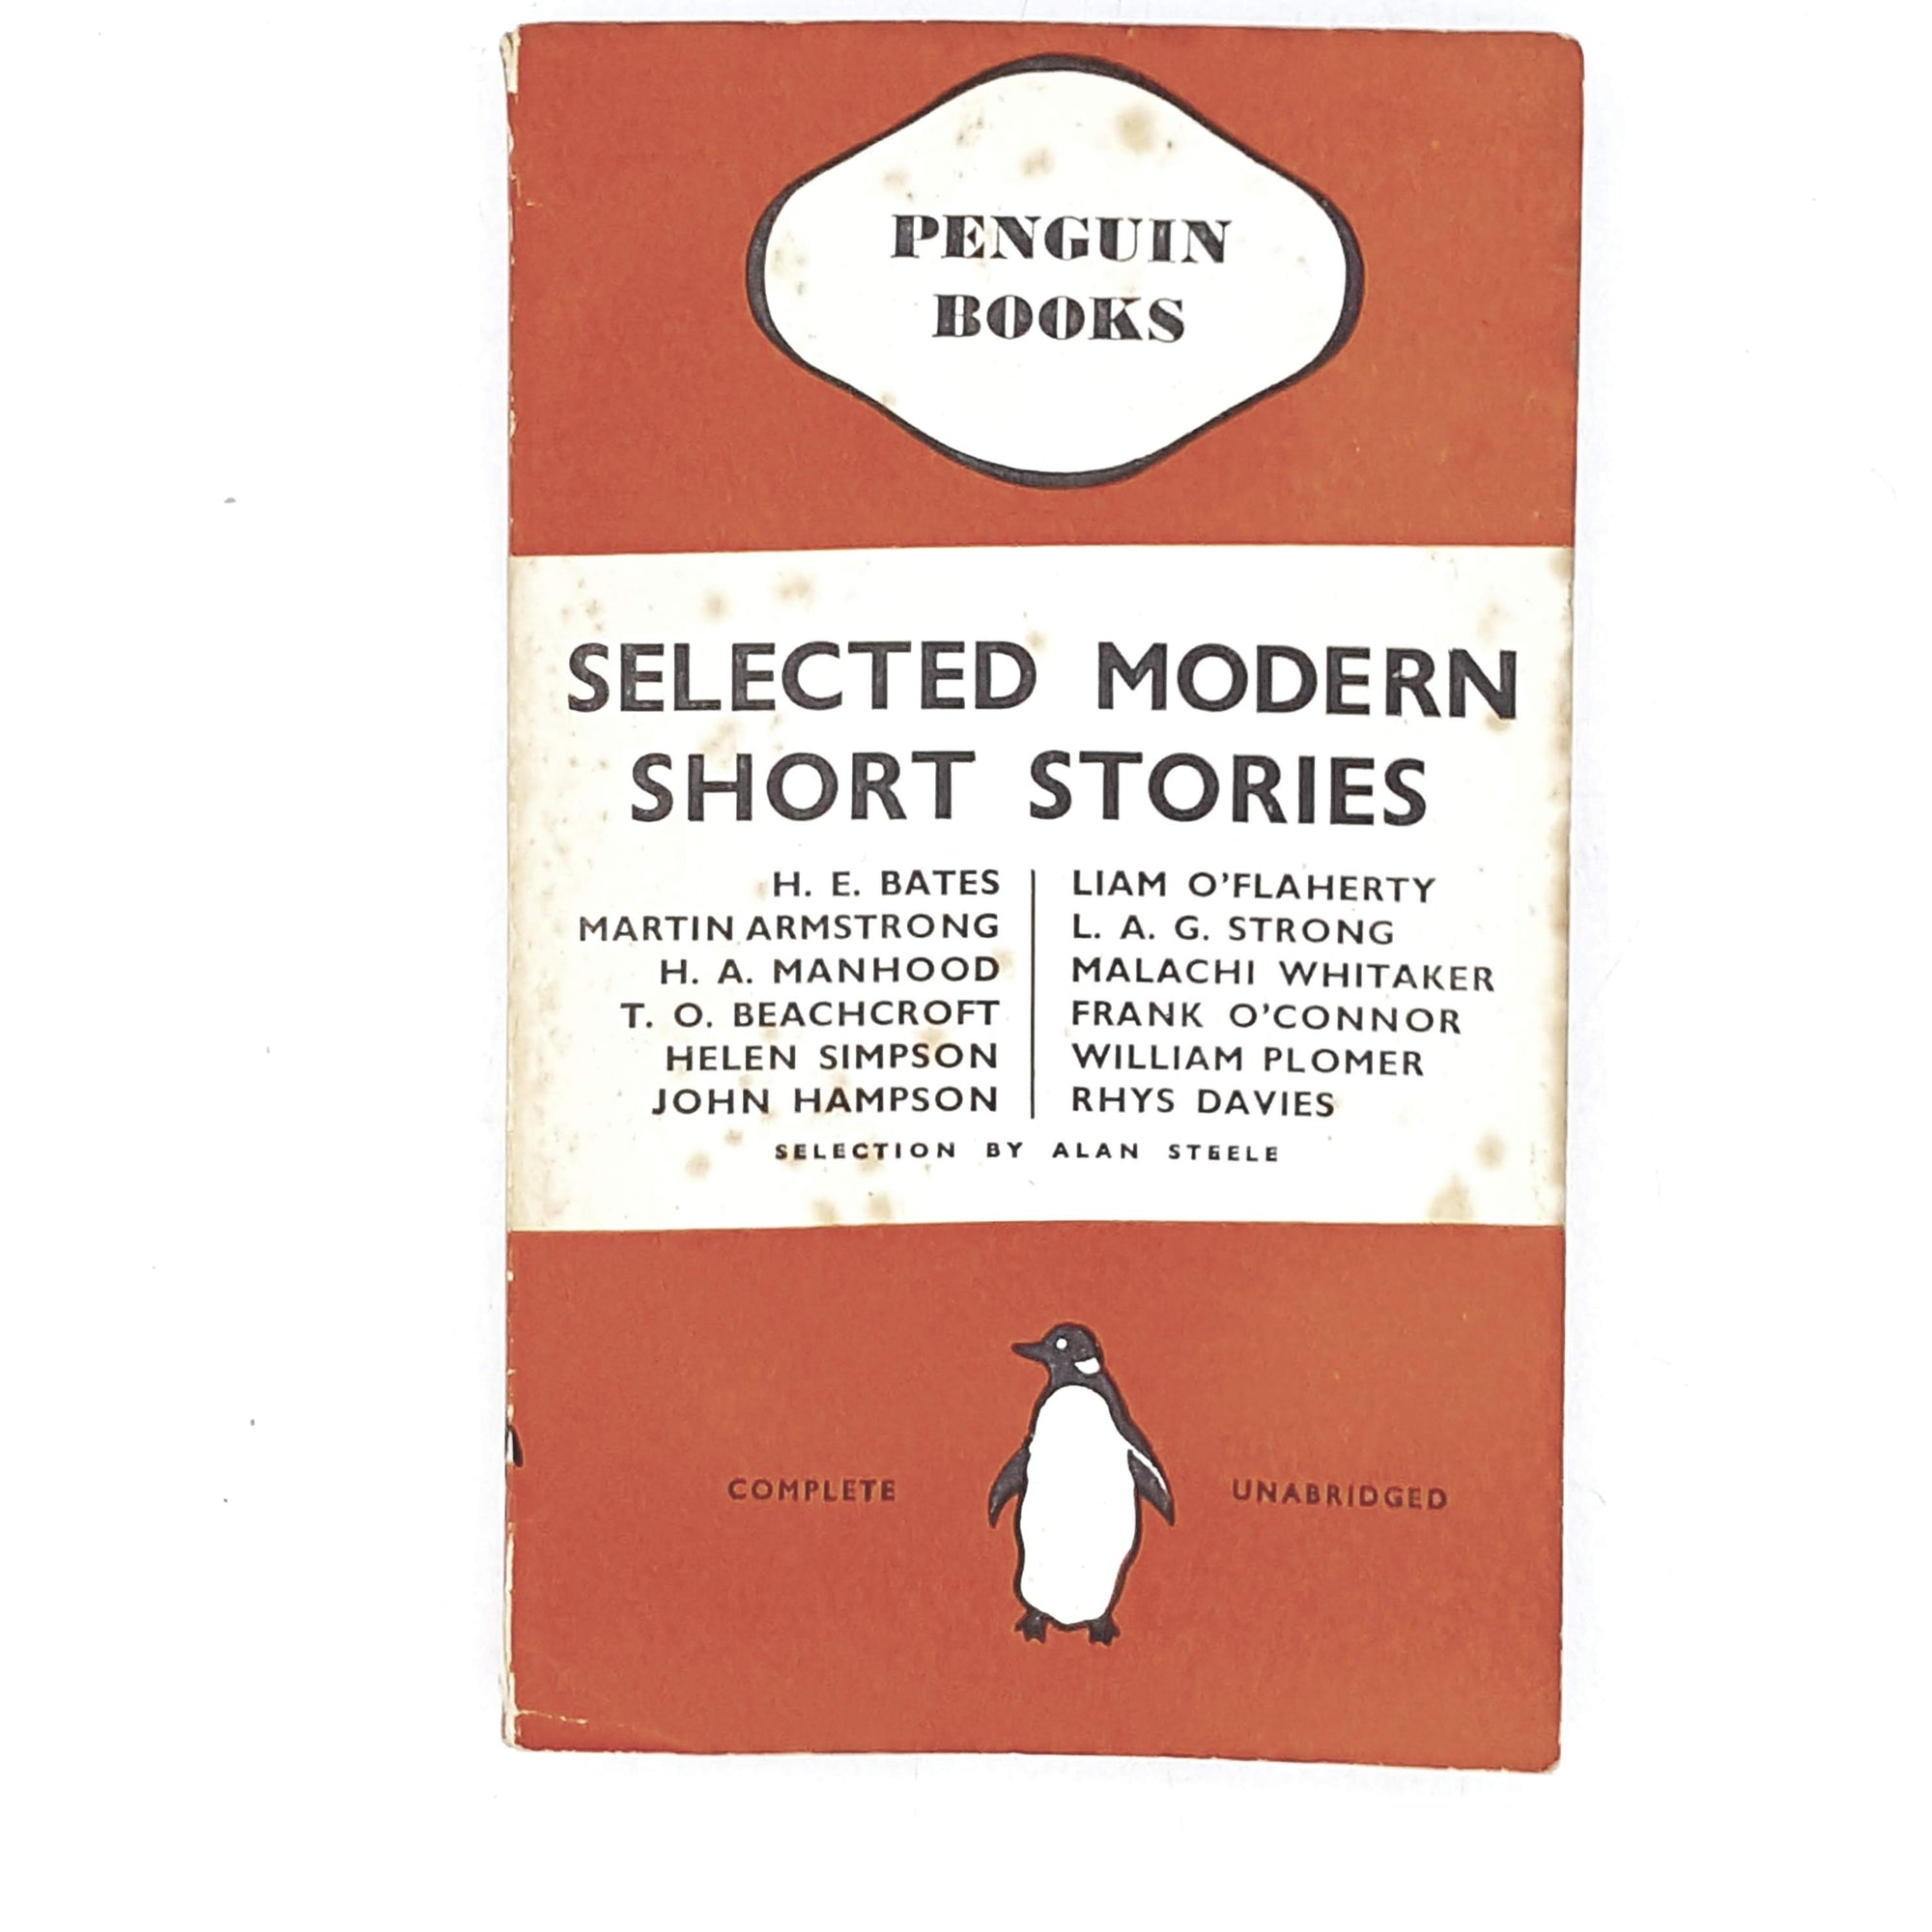 vintage-penguin-selected-modern-short-stories-1937-orange-antique-books-country-house-library